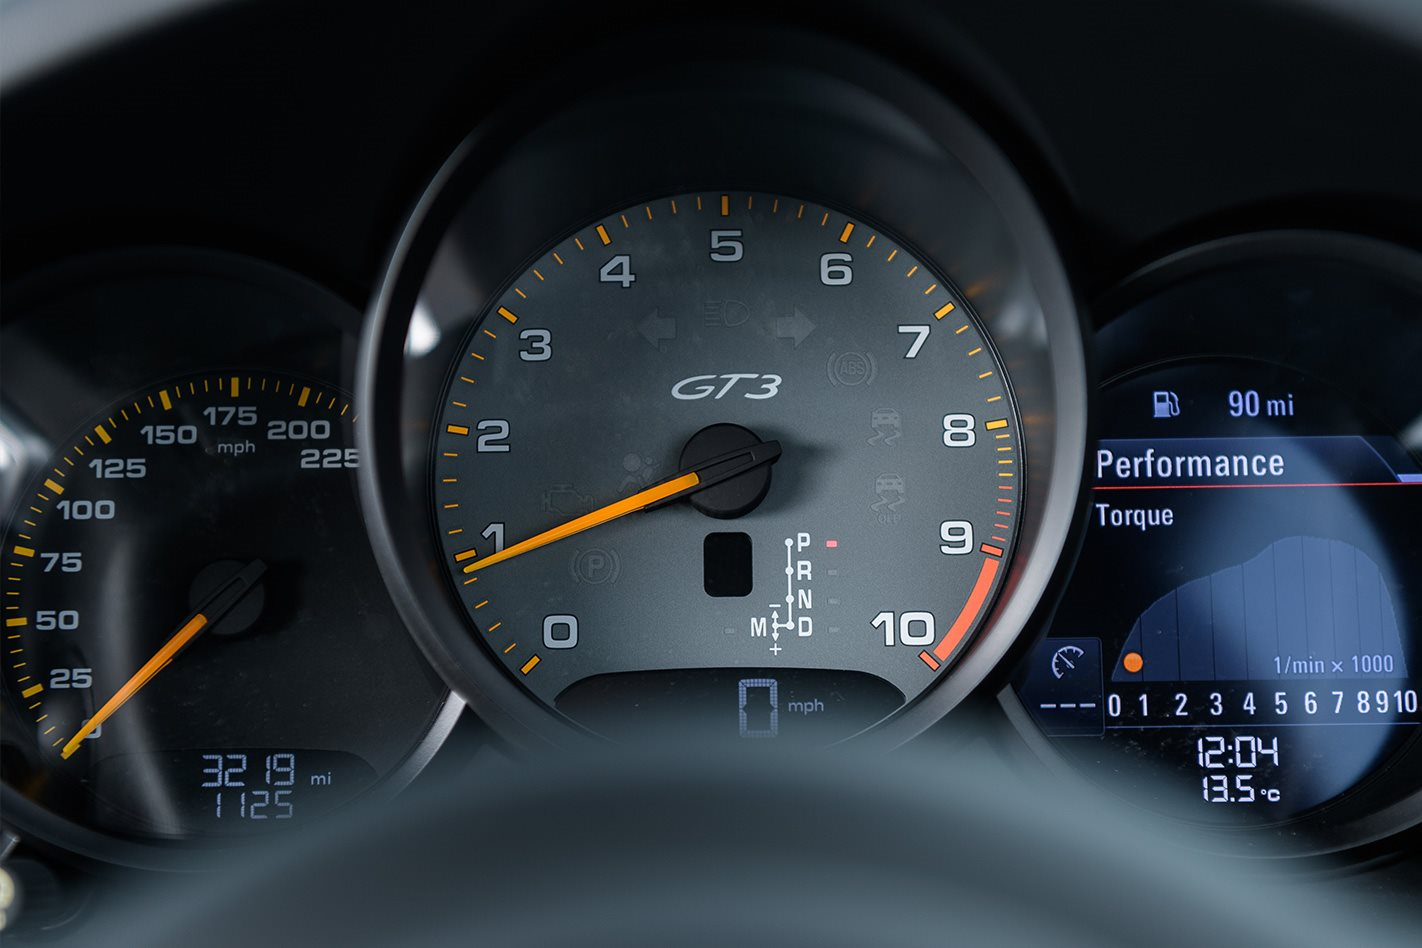 2017 Porsche 911 GT3 manual speedo